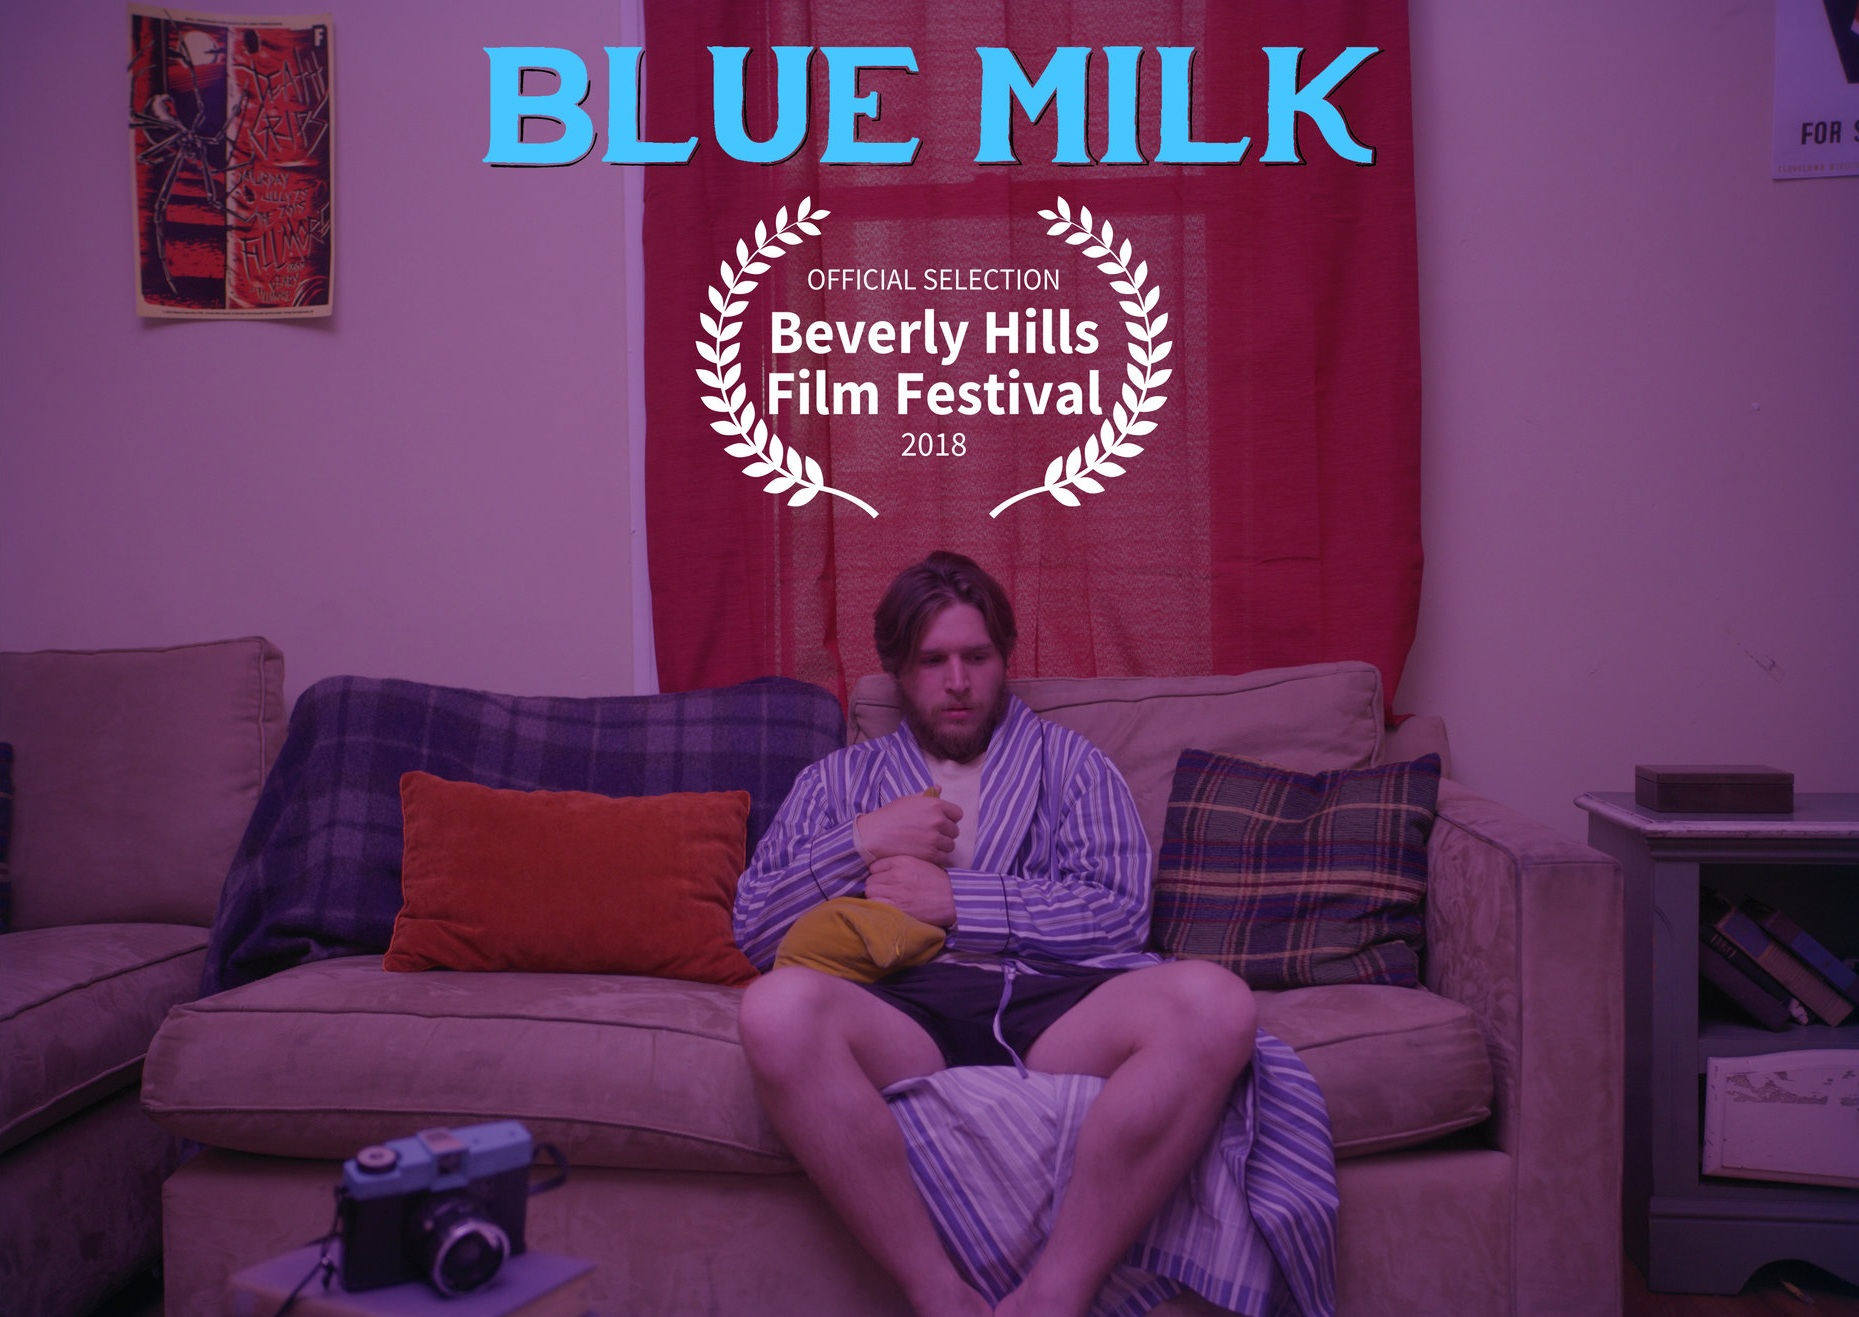 Blue milk - What a strange delivery…